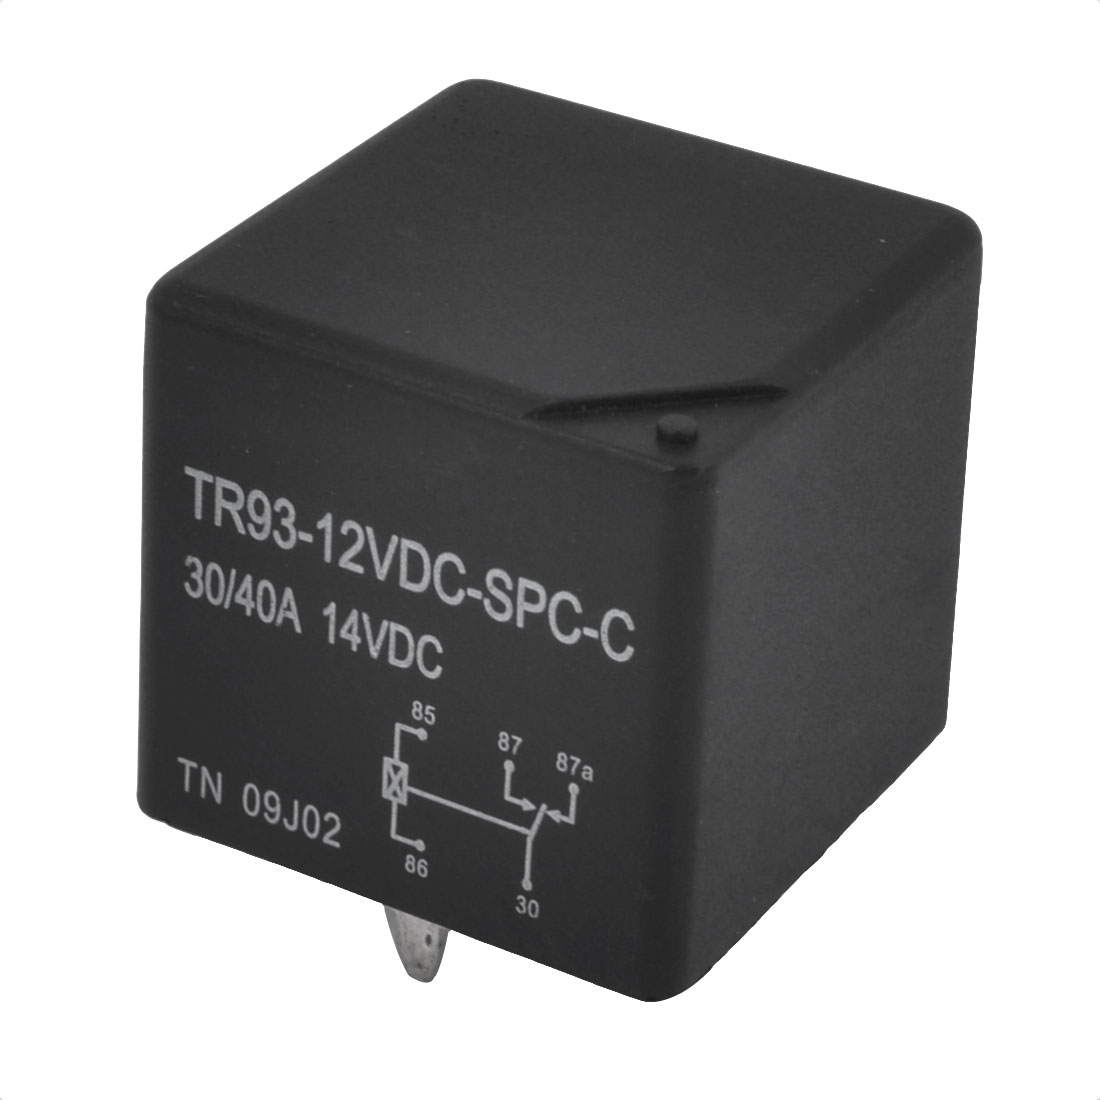 DC 12V Coil Voltage SPDT 1NO 1NC PCB Terminal Pin Soldering General Purpose Power Relay TR93-12VDC-SC-C